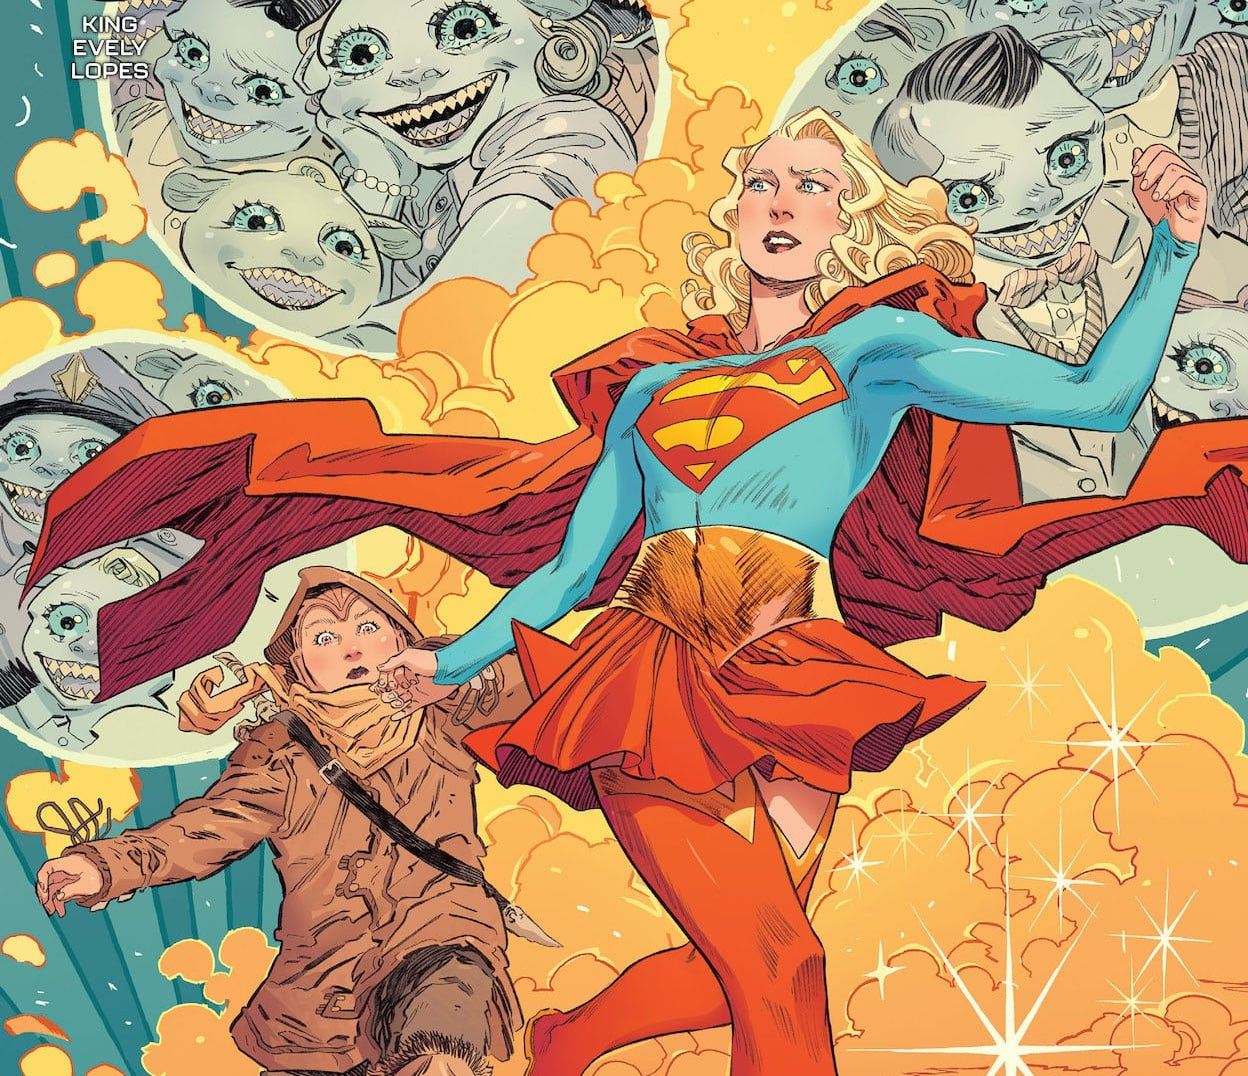 'Supergirl: Woman of Tomorrow' #3 is a powerful issue